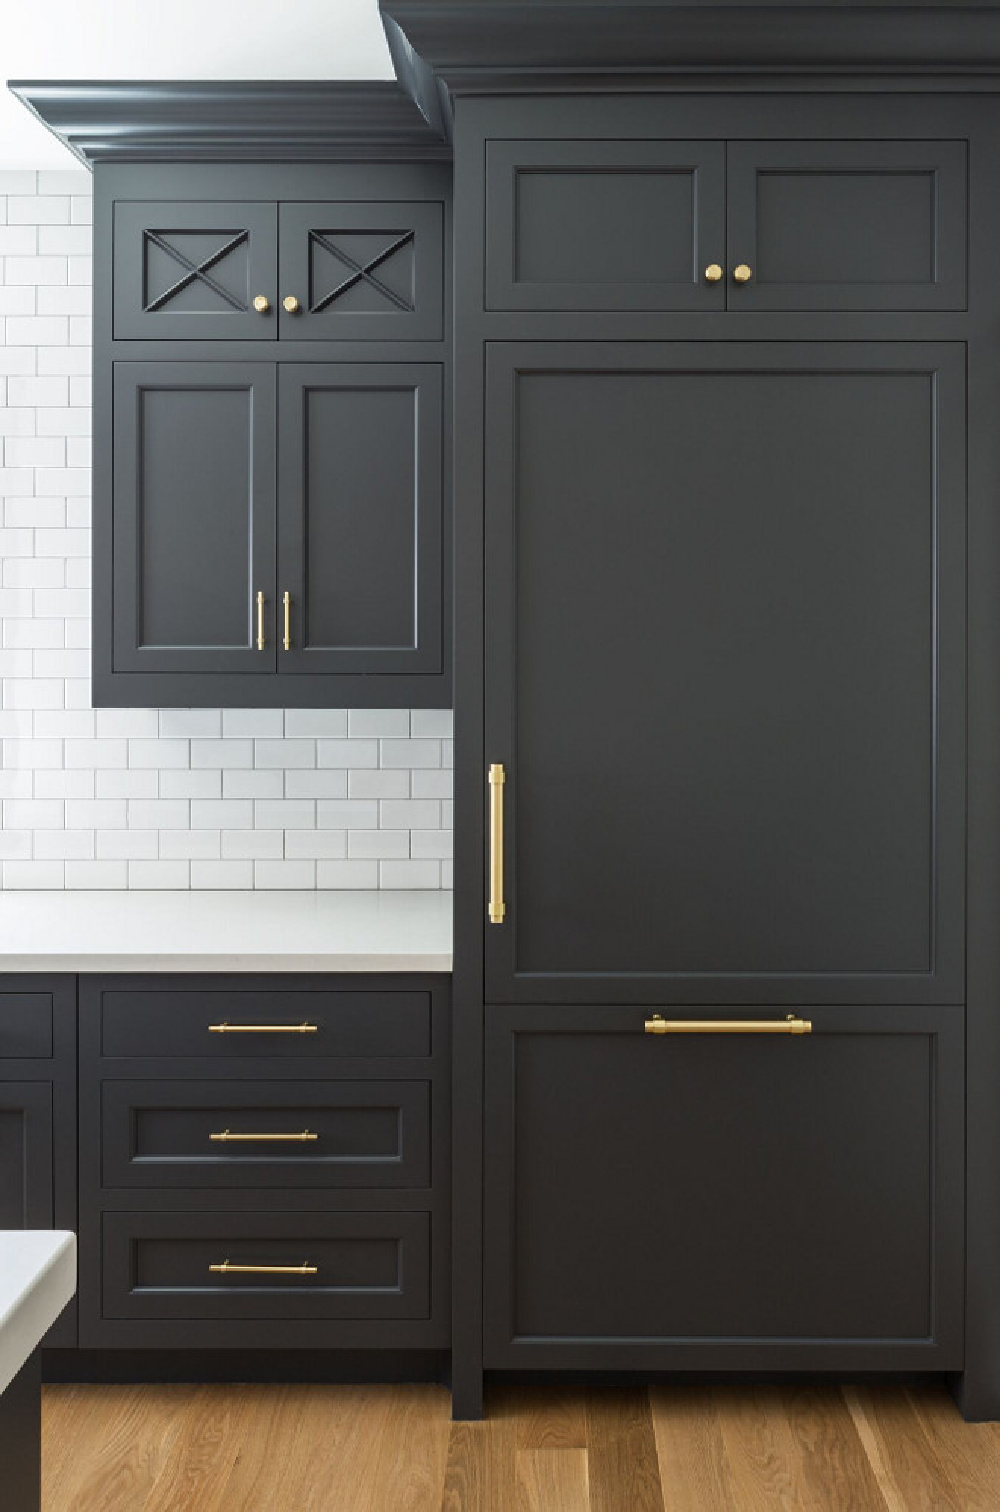 Cheating Heart (Benjamin Moore) dark gray paint color on kitchen cabinets in traditional kitchen by The Fox Group. Come be inspired by more Timeless Interior Design Ideas, Paint Colors & Furniture.  #benjaminmoorecheatingheart #kitchendesign